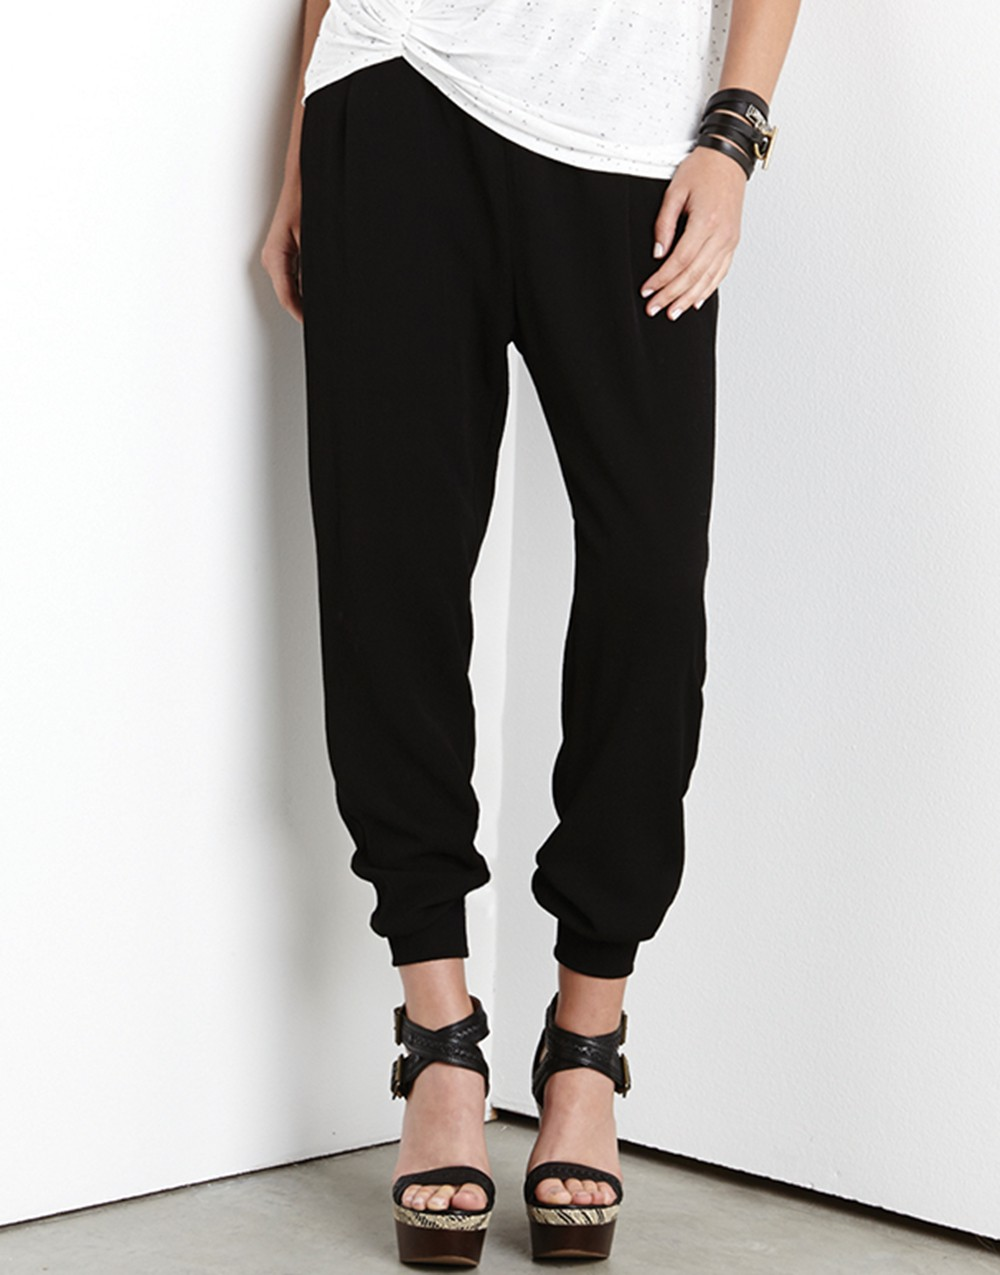 black ankle pants for women photo - 1